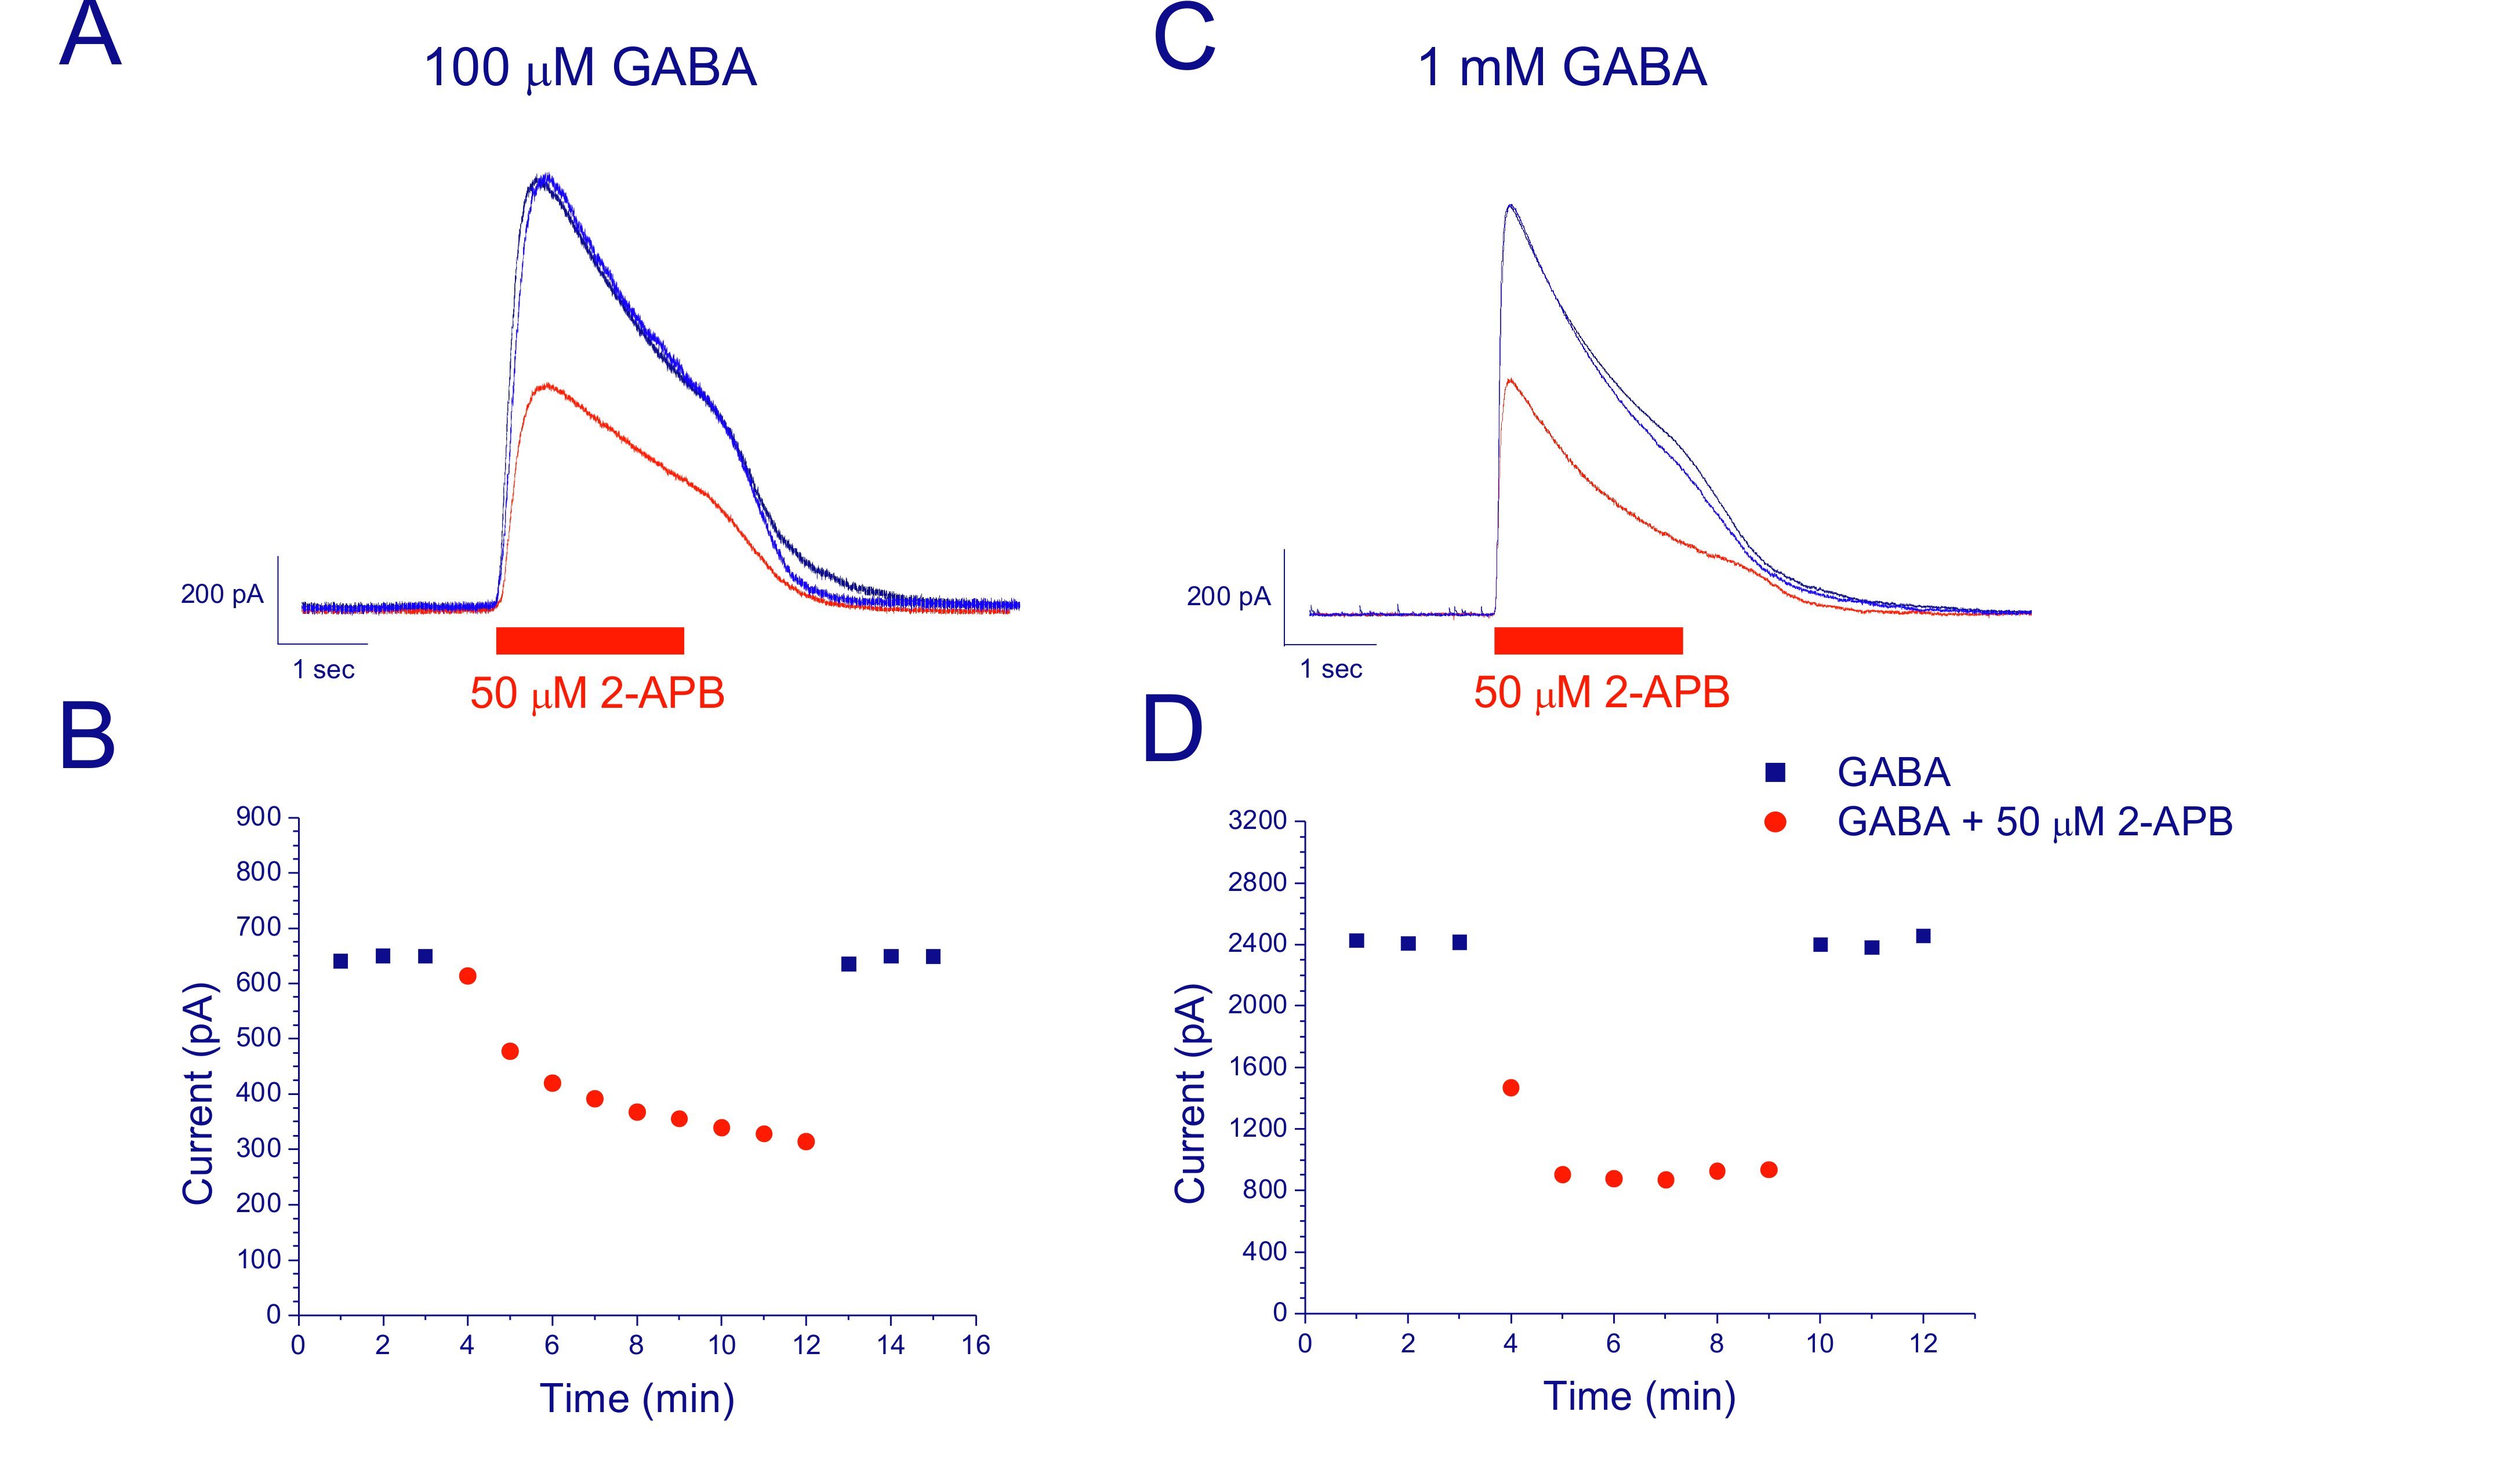 Figure 1. Blocking effect of 50 µM 2-APB on the currents evoked by repetitive application of GABA. (A) Raw currents recorded from an MPN neuron in response to 100 µM GABA only (black), in the presence of 50 µM 2-APB at the 5th consecutive application of 100 µM GABA (red) and after wash-out of 2-APB (blue). (B) Time course of the effect of 2-APB on peak current amplitude, for the cell in A (black: control; red: 2-APB).  (C) Raw currents recorded from an MPN neuron in response to 1.0 mM GABA only (black), in the presence of 50 µM 2-APB at the 5th consecutive application of 1.0 mM GABA (red) and after wash-out of 2-APB (blue). (D) Time course of the effect of 2-APB on peak current amplitude, for the cell in C (black: control; red: 2-APB). Currents were recorded at -34 mV.